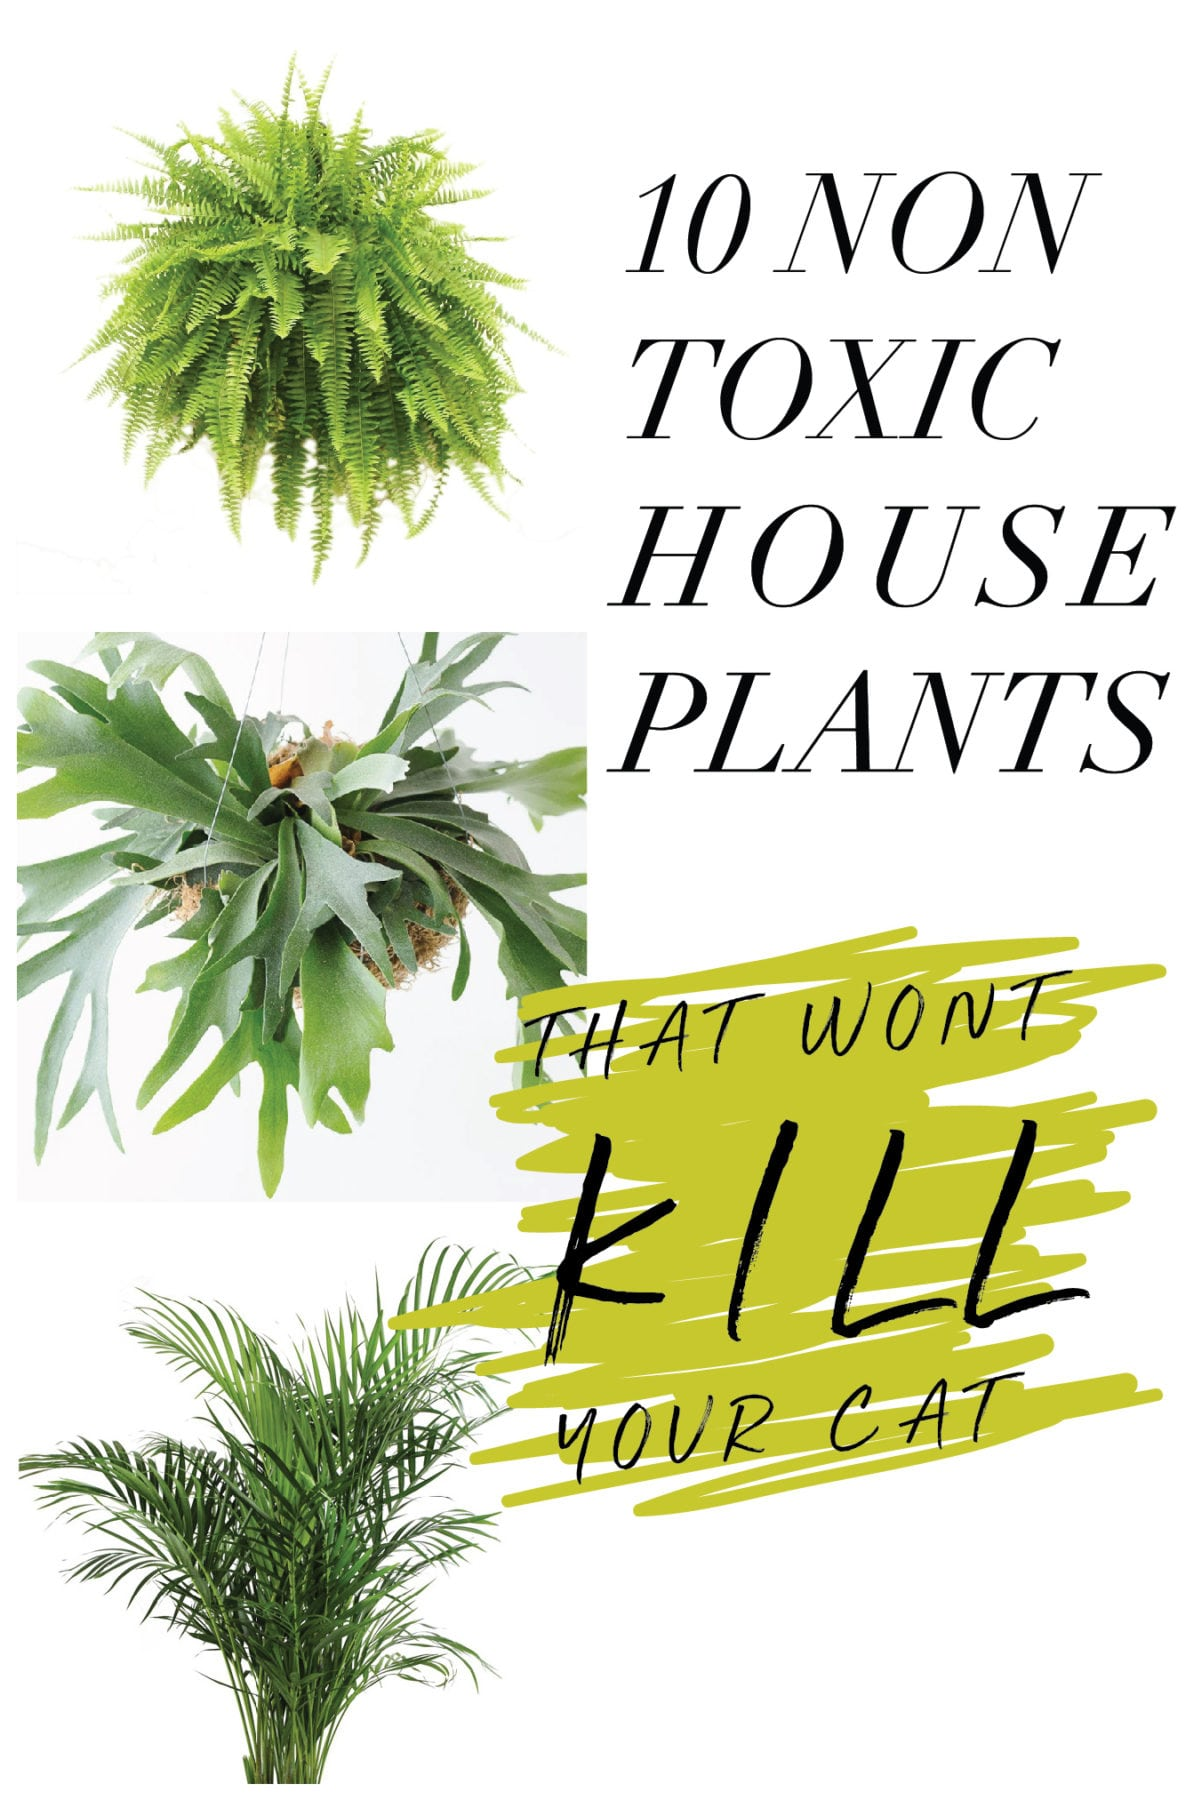 10 Non Toxic Houseplants That Won't Kill Pretty Kitty | Ponytail Palm | Common House Plants | Jessica Brigham | Magazine Ready for Life